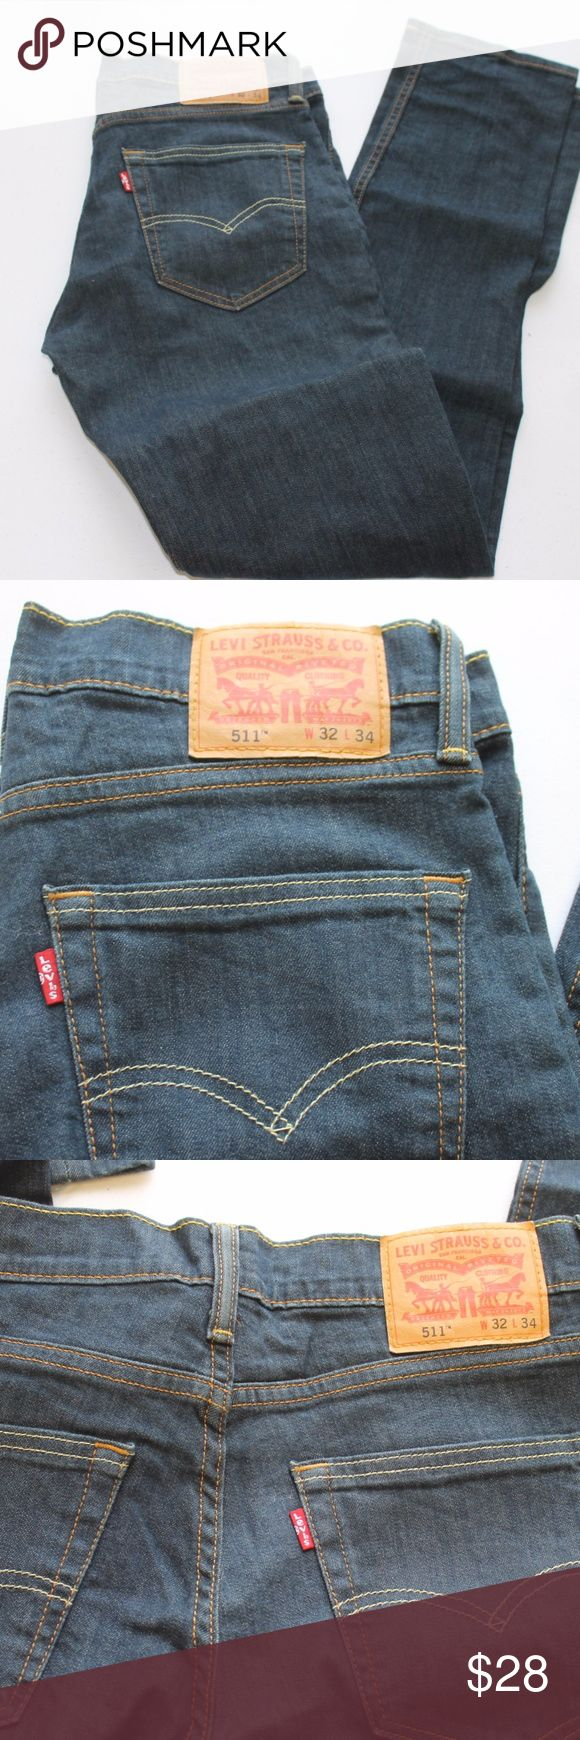 """MENS LEVIS 511 JEANS SIZE 32 X 34 BRAND NEW $58 SIZE:  32 X 34  WAIST:   32  INSEAM:    34  LENGTH:     43""""  STYLE:     STRAIGHT LEG - ZIP FLY  MATERIAL:     COTTON/ELASTINE  CONDITION:        BRAND NEW WITHOUT TAGS. SOURCED DIRECTLY FROM A NATIONAL UPSCALE U.S. RETAILER. QUALITY AND AUTHENTICITY GUARANTEED!  32-25-G Levi's Jeans"""